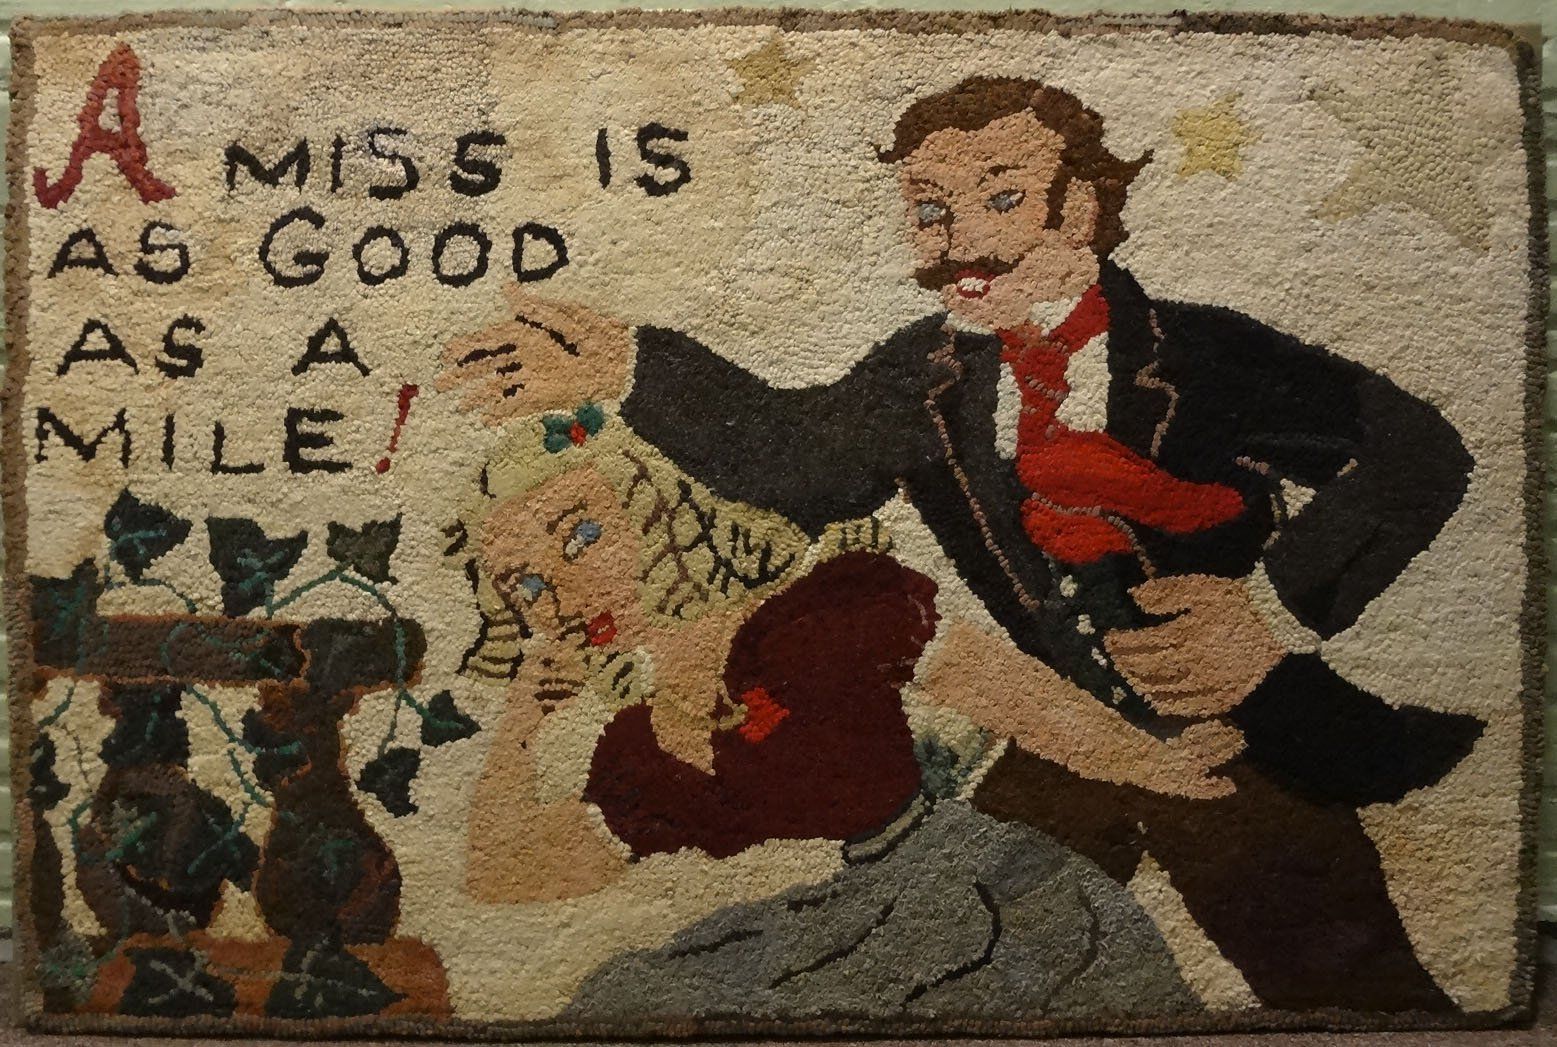 HUTCHINSON 'A MISS IS AS GOOD AS A MILE' ANTIQUE HOOKED RUG